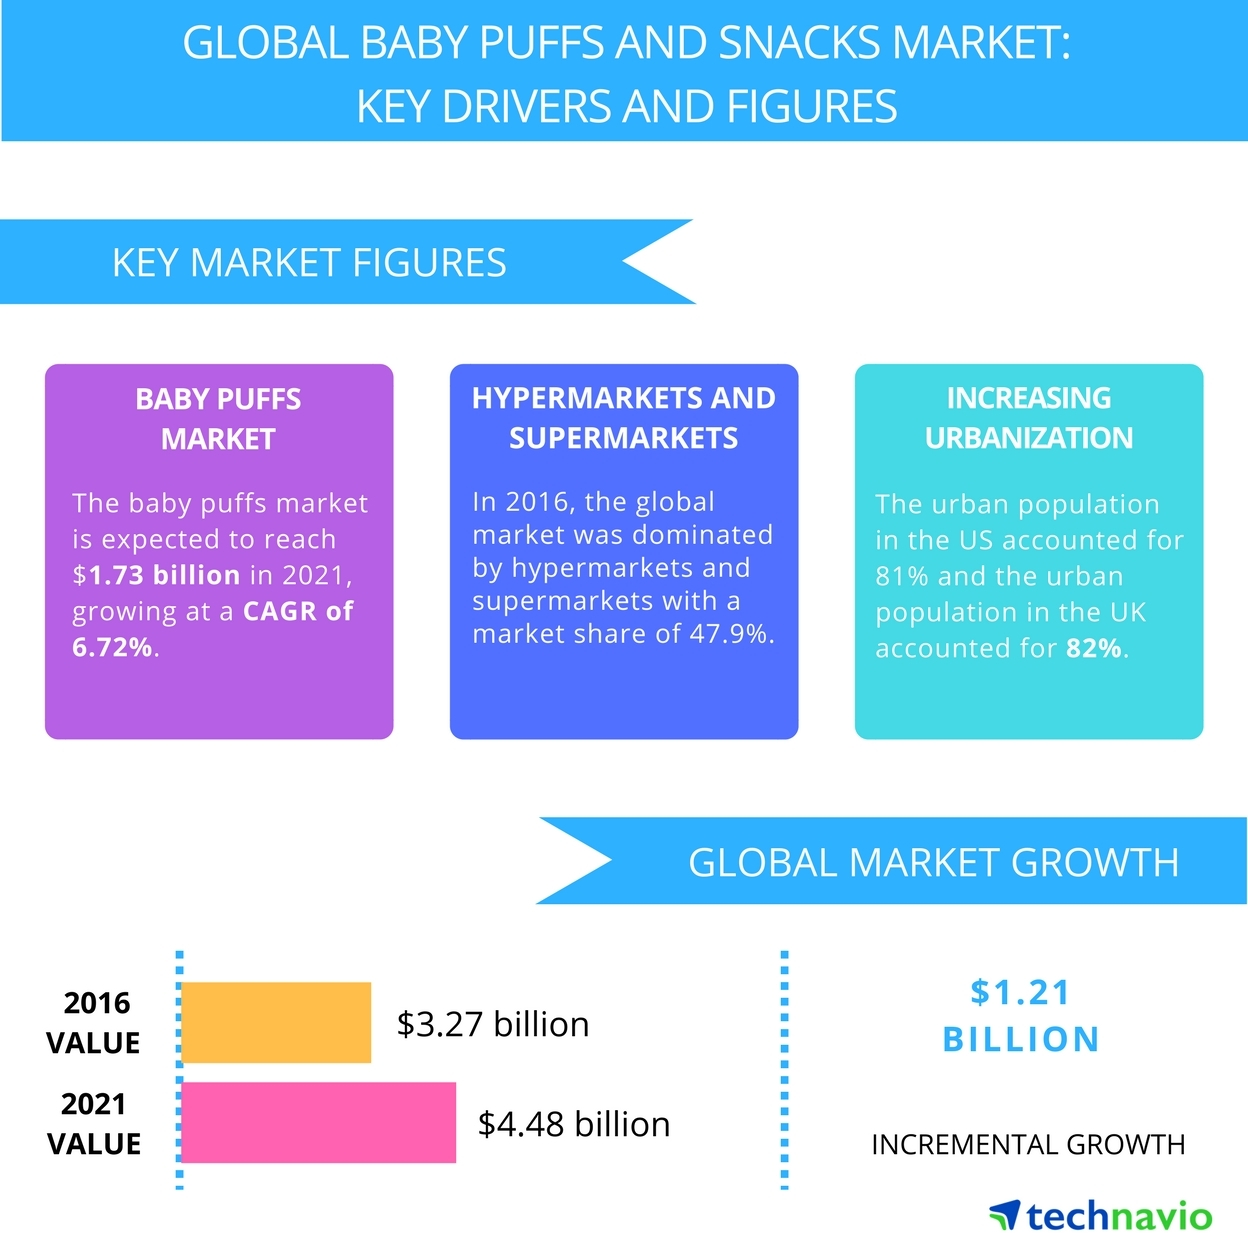 Technavio has published a new report on the global baby puffs and snacks market from 2017-2021. (Photo: Business Wire)